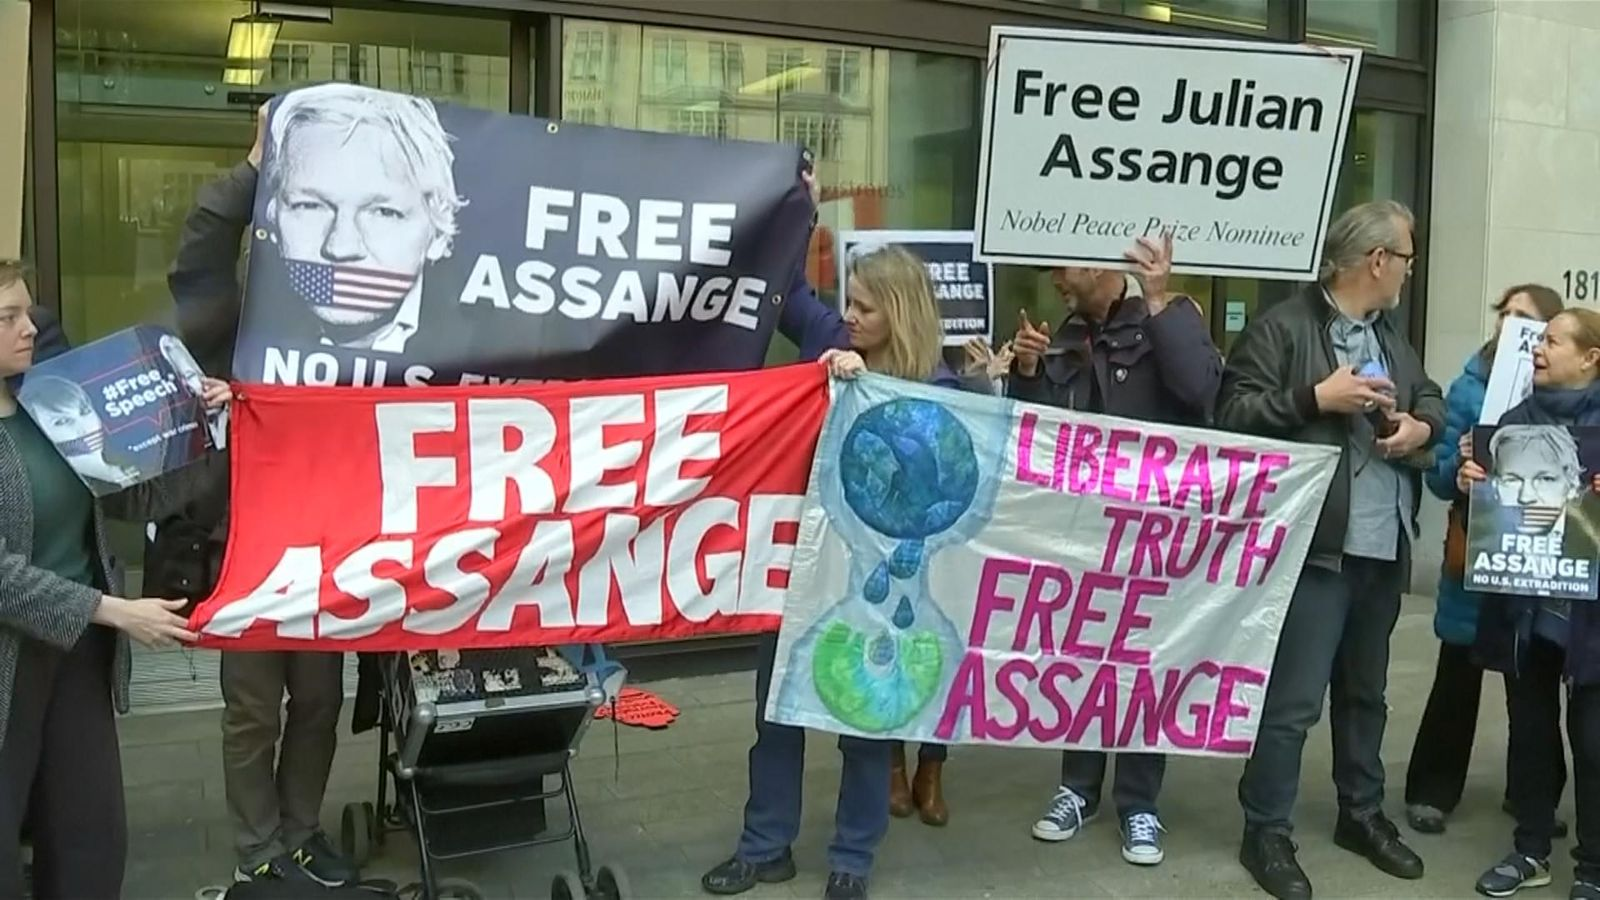 Julian Assange US extradition hearing date set